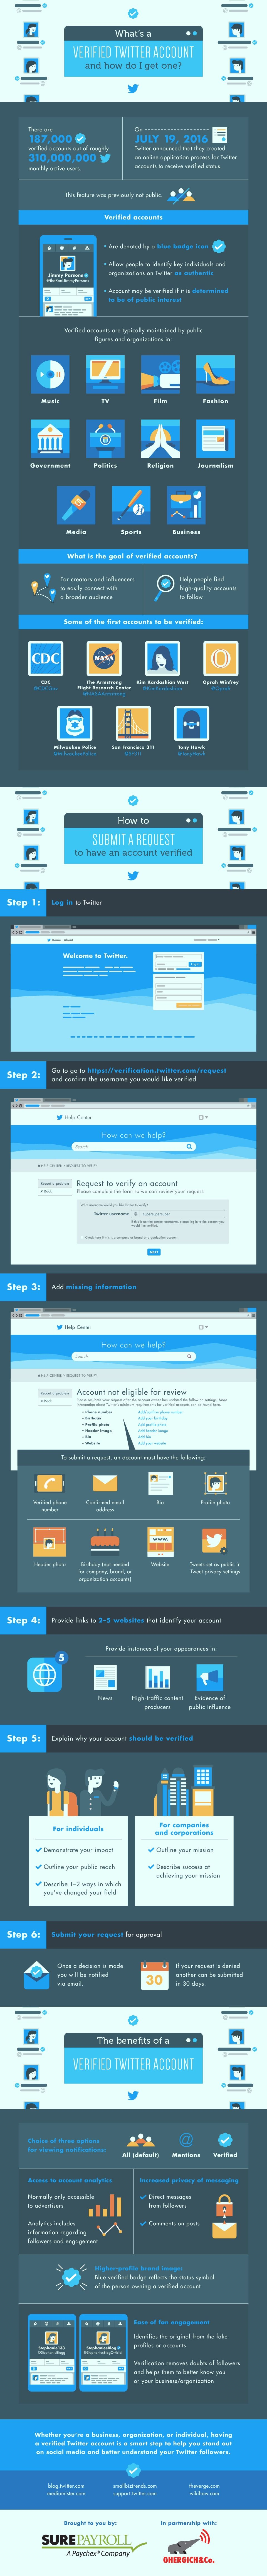 What's a Verified Twitter Account and How do I Get One? #Infographic